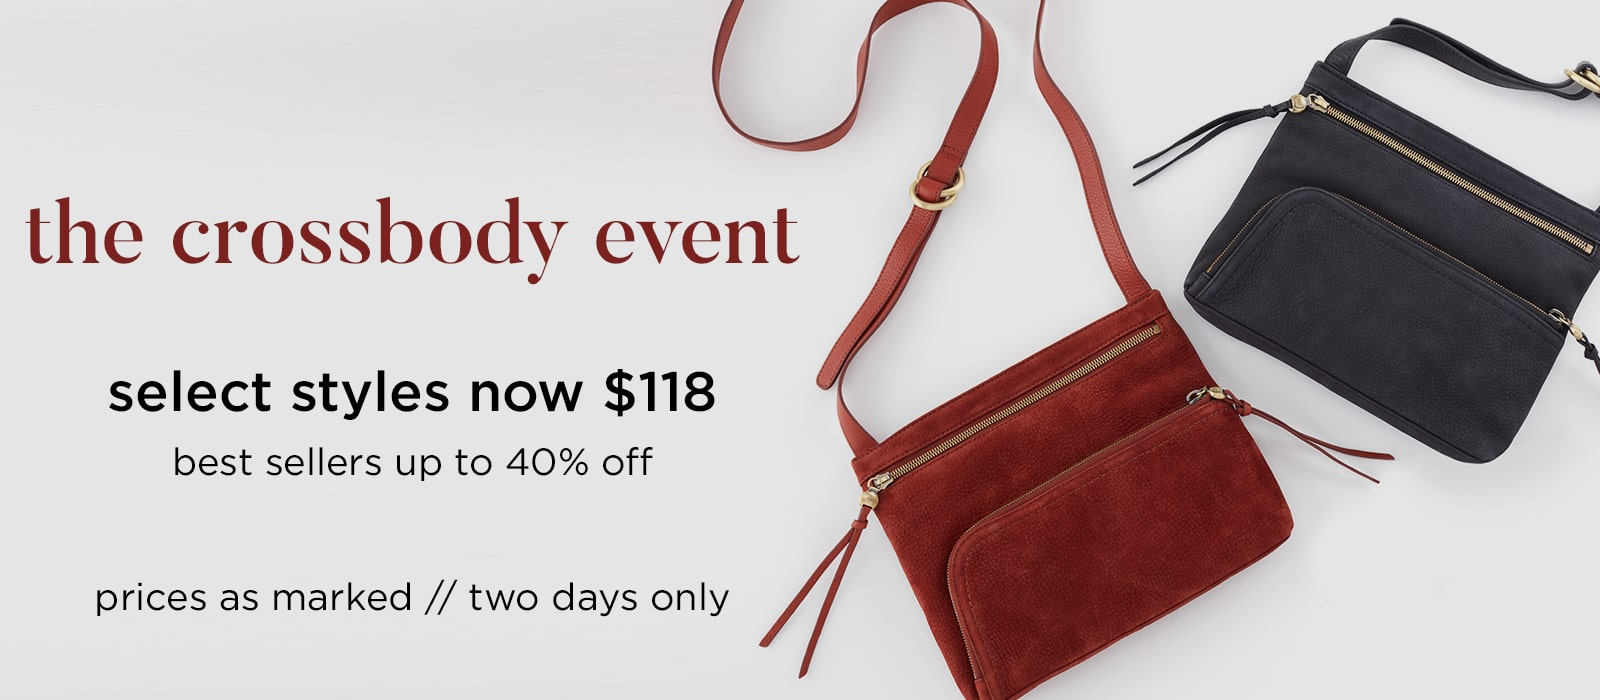 Shop Our Crossbody Event, Select Crossbody Styles $118